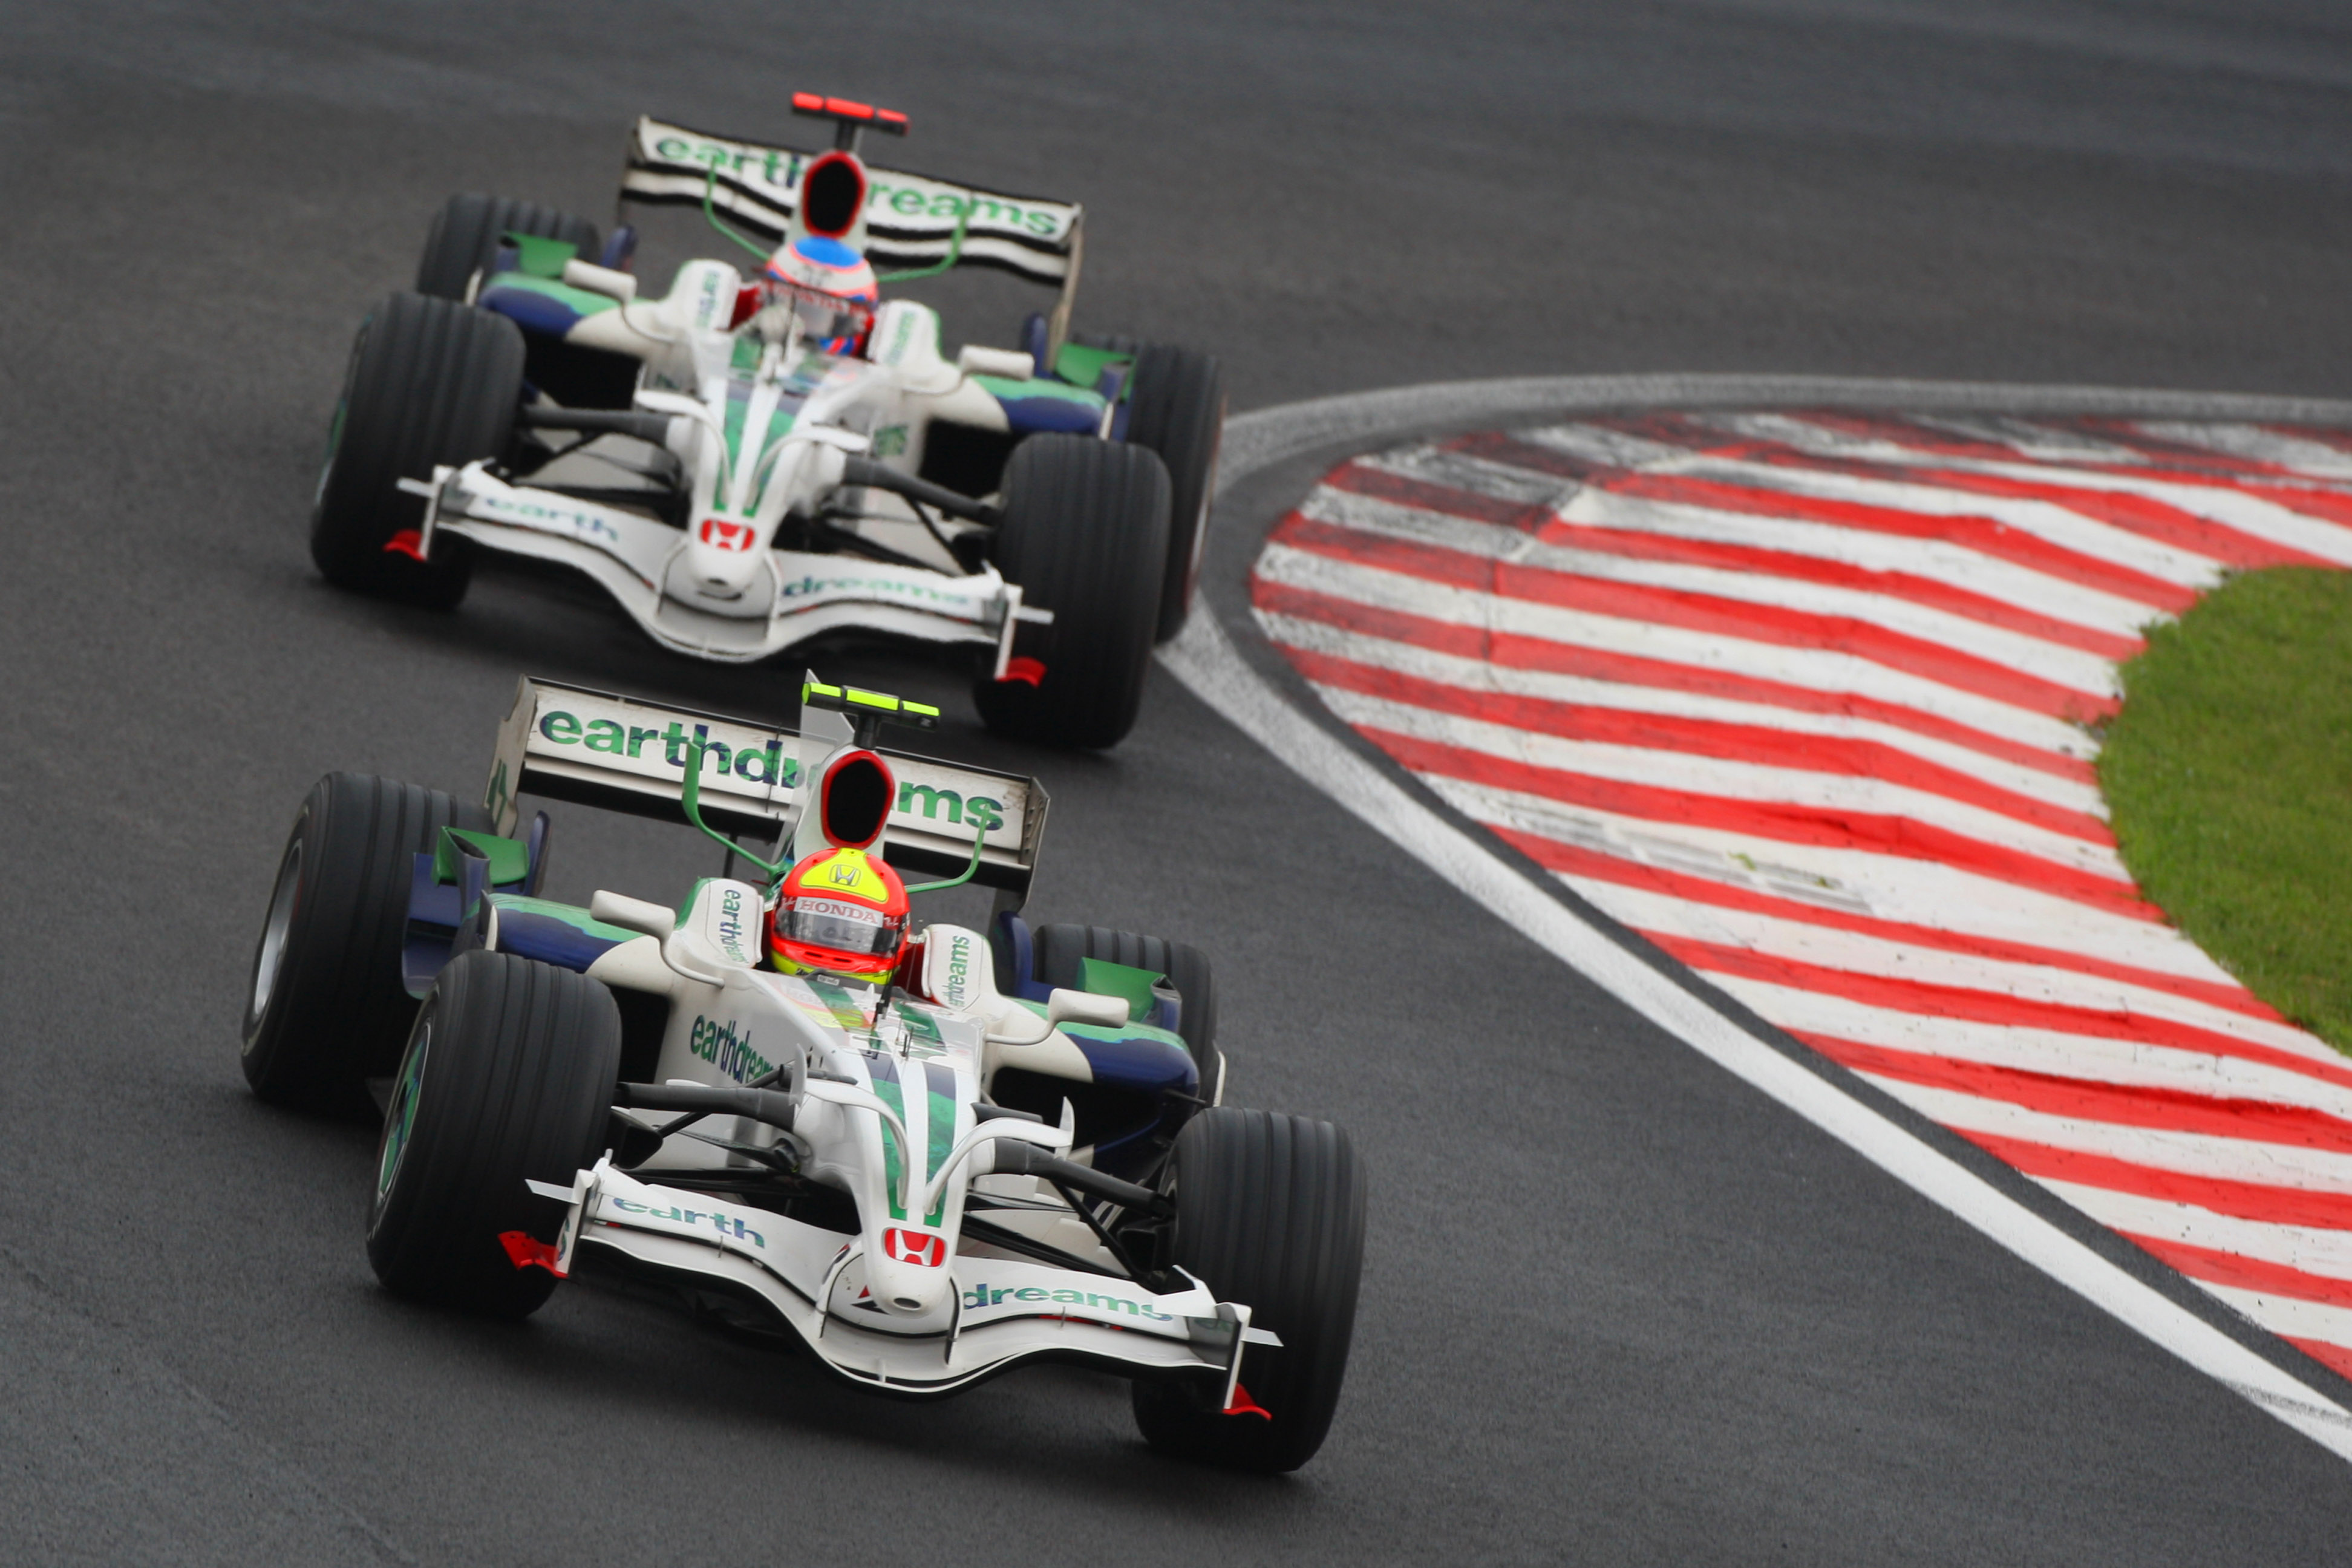 Rubens Barrichello Jenson Button Honda Brazilian Grand Prix 2008 Interlagos